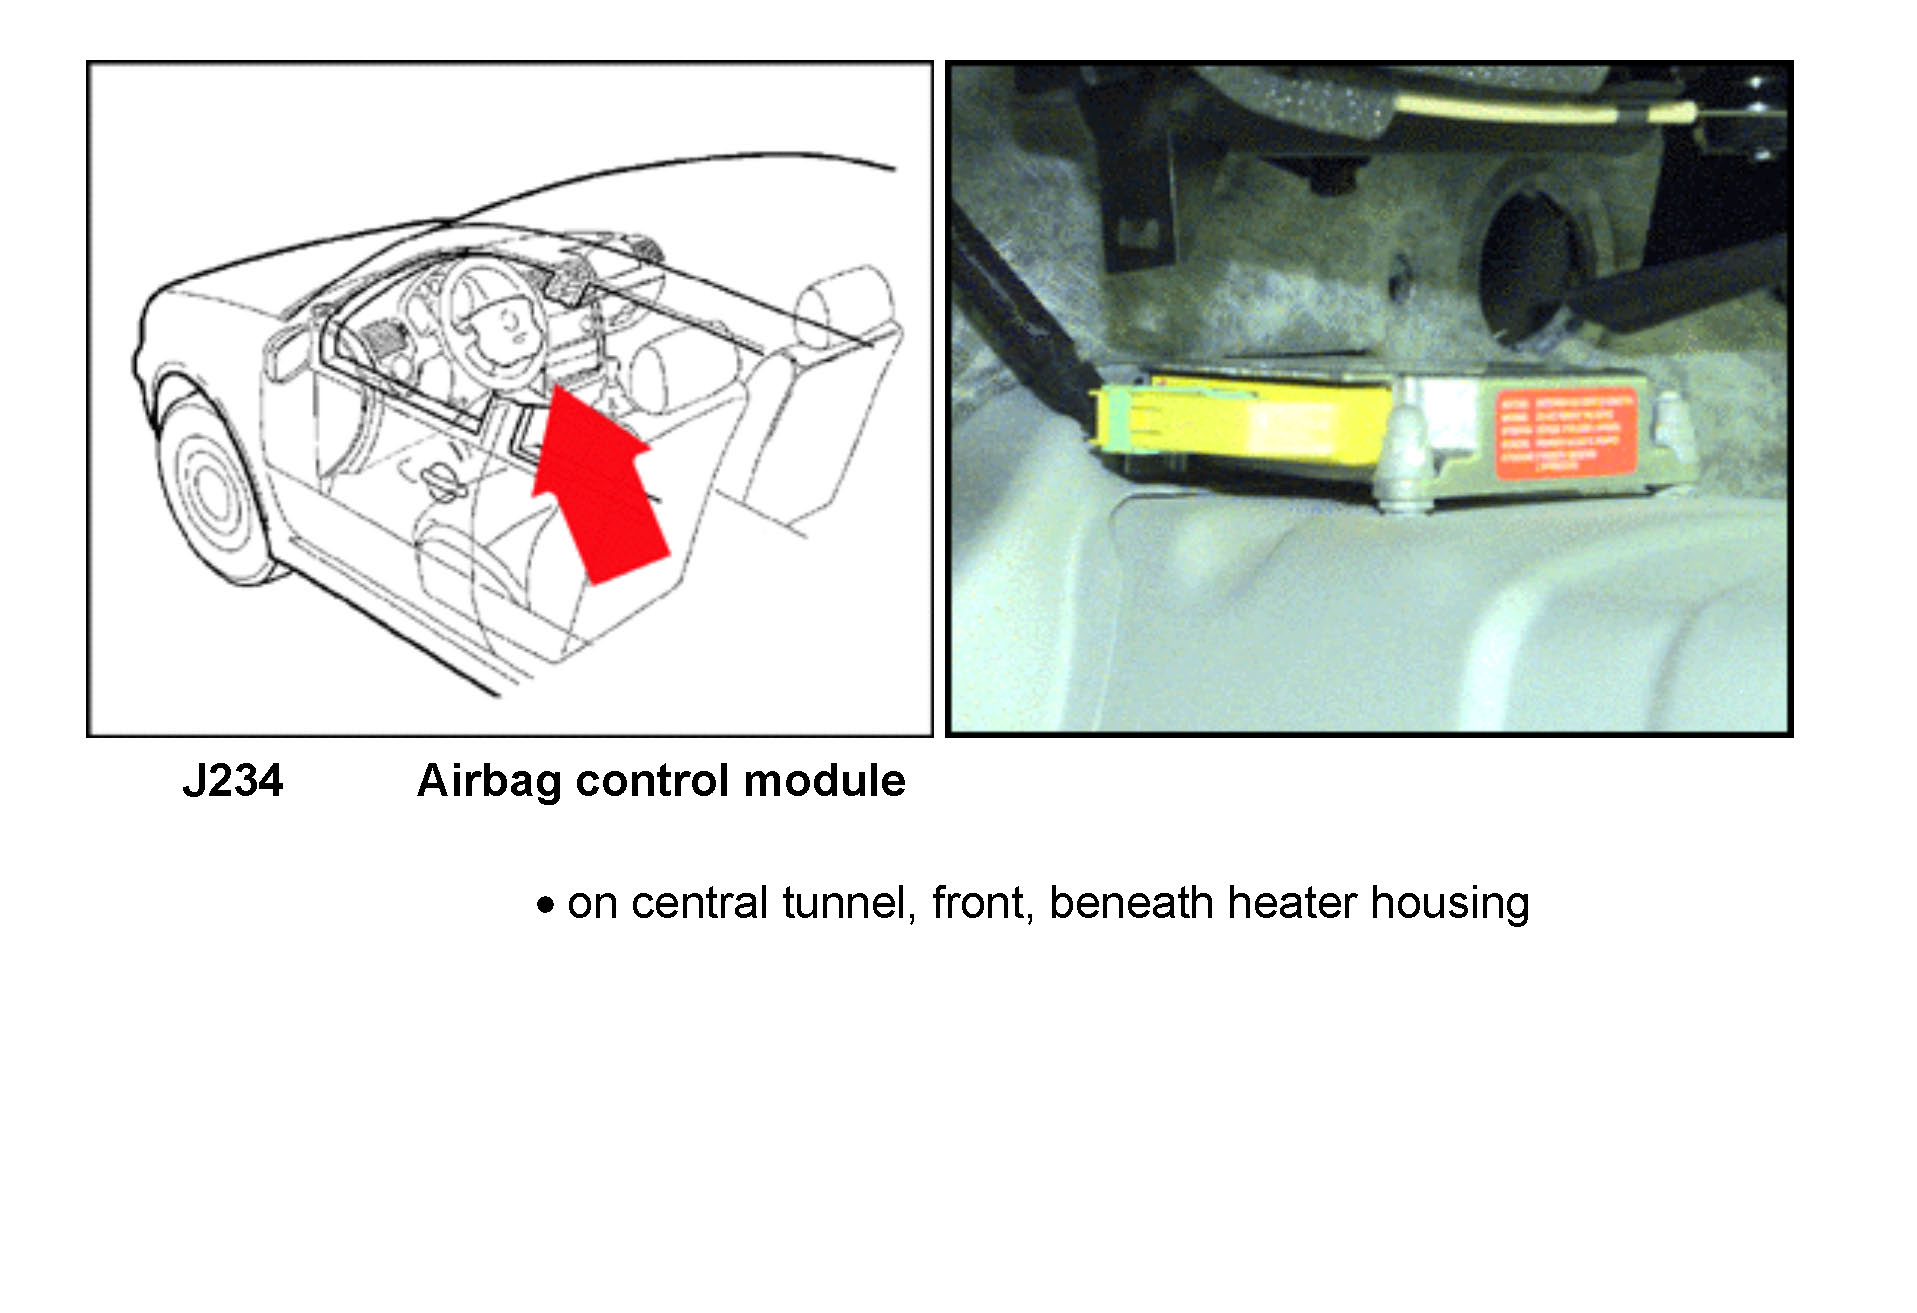 2004 jetta wiring diagram with 78z25 Volkswagen Jetta Gls Srs Module Located on Ford Transit Connect Fuse Box Diagram additionally 19x0y 2004 Toyota Sienna Minivan N T Work Due Blow Fuse Fuse Panel as well Bi Xenon Wiring Diagram furthermore Viewtopic further 2003 Jetta Battery Fuse Box Wiring.